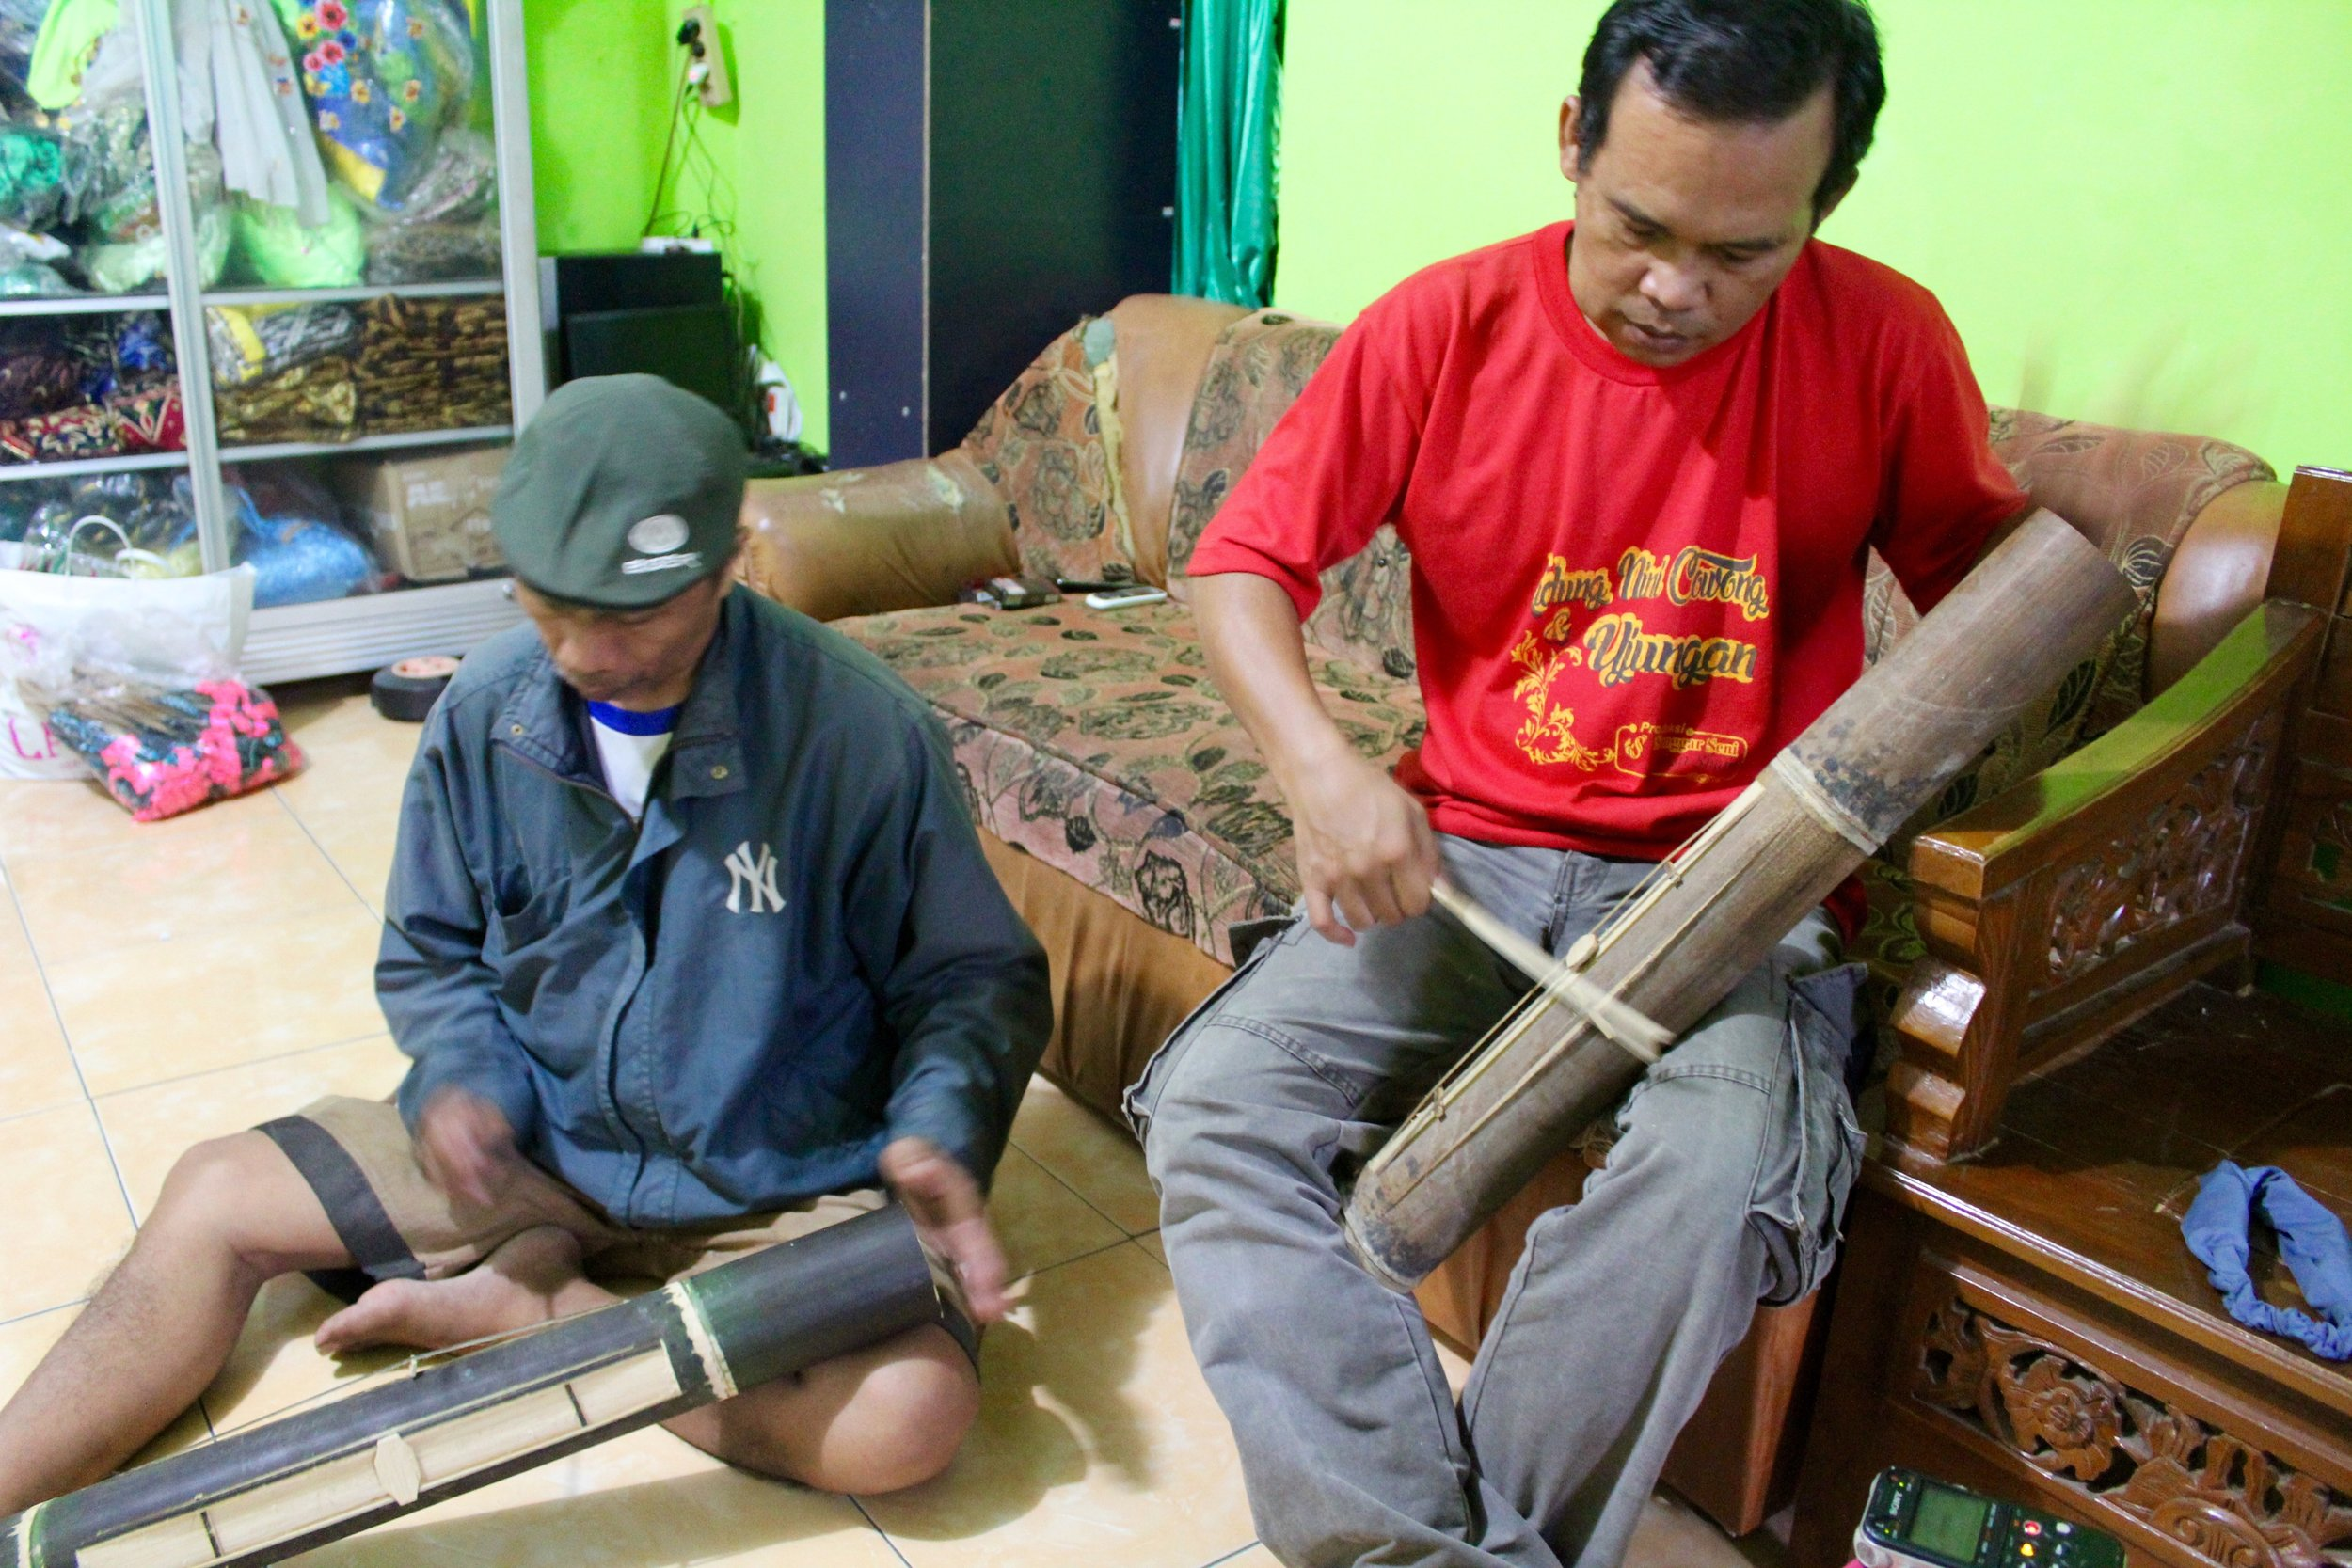 Pak Pakel (left) and Pak Yusmanto (right) jam out in the living room. Pakel's gumbeng is a little bit green as it hasn't been properly dried yet.